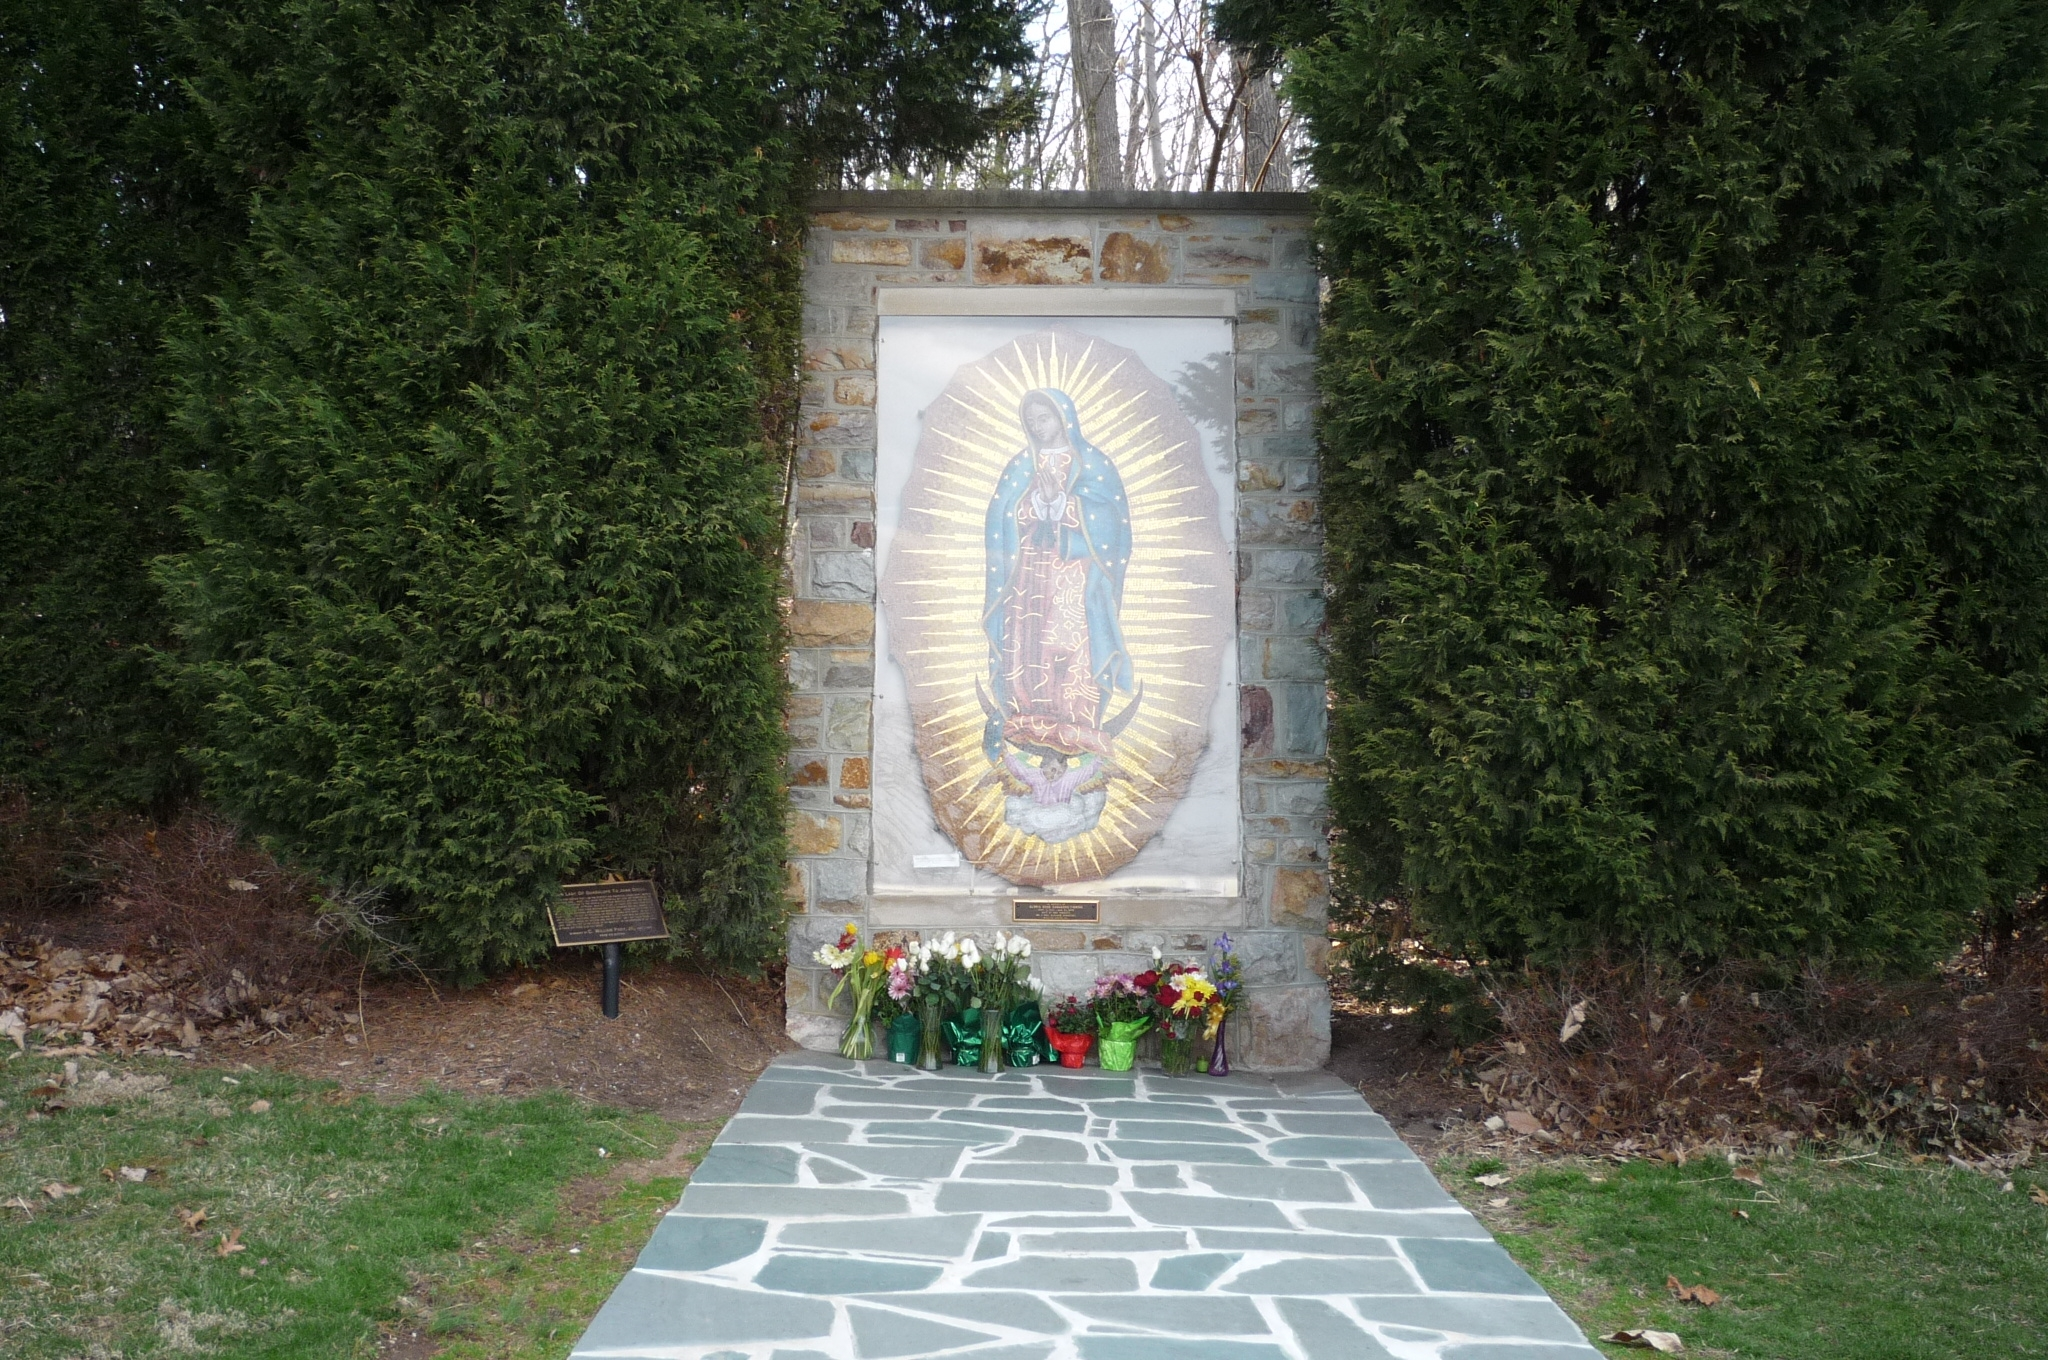 Shrine to Our Lady of Guadalpe, adjacent to the campanile